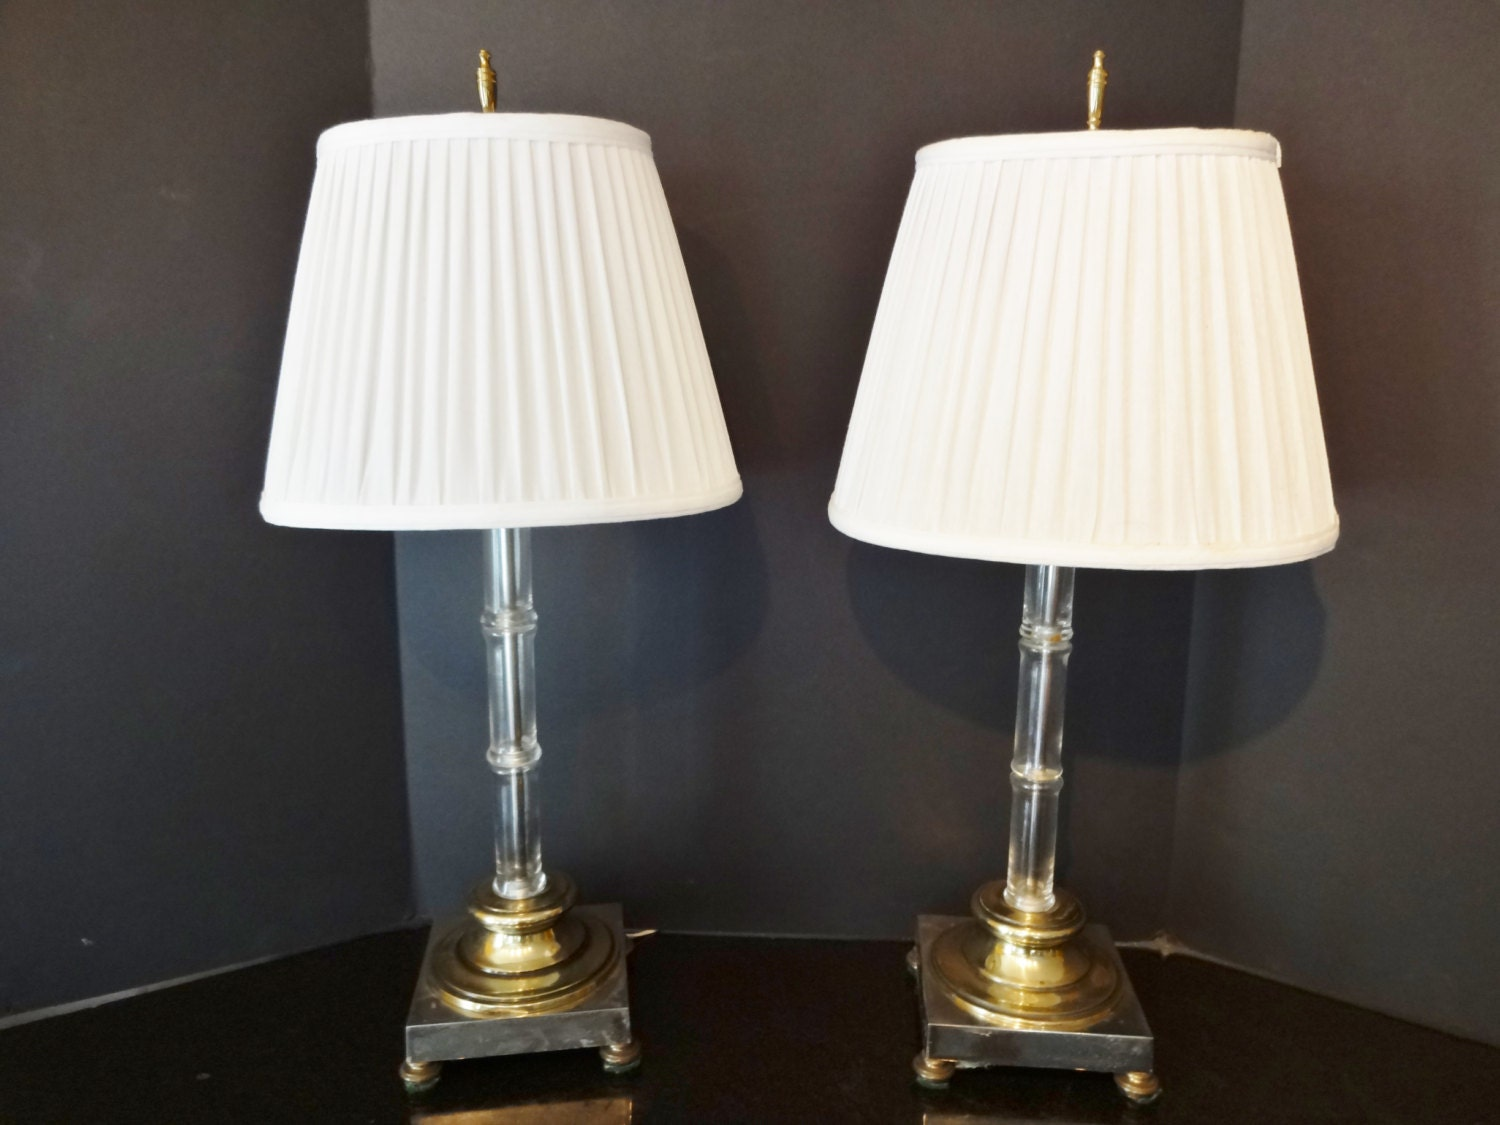 Vintage Crystal Bedroom Lamps With Pleated Oval Shades Set